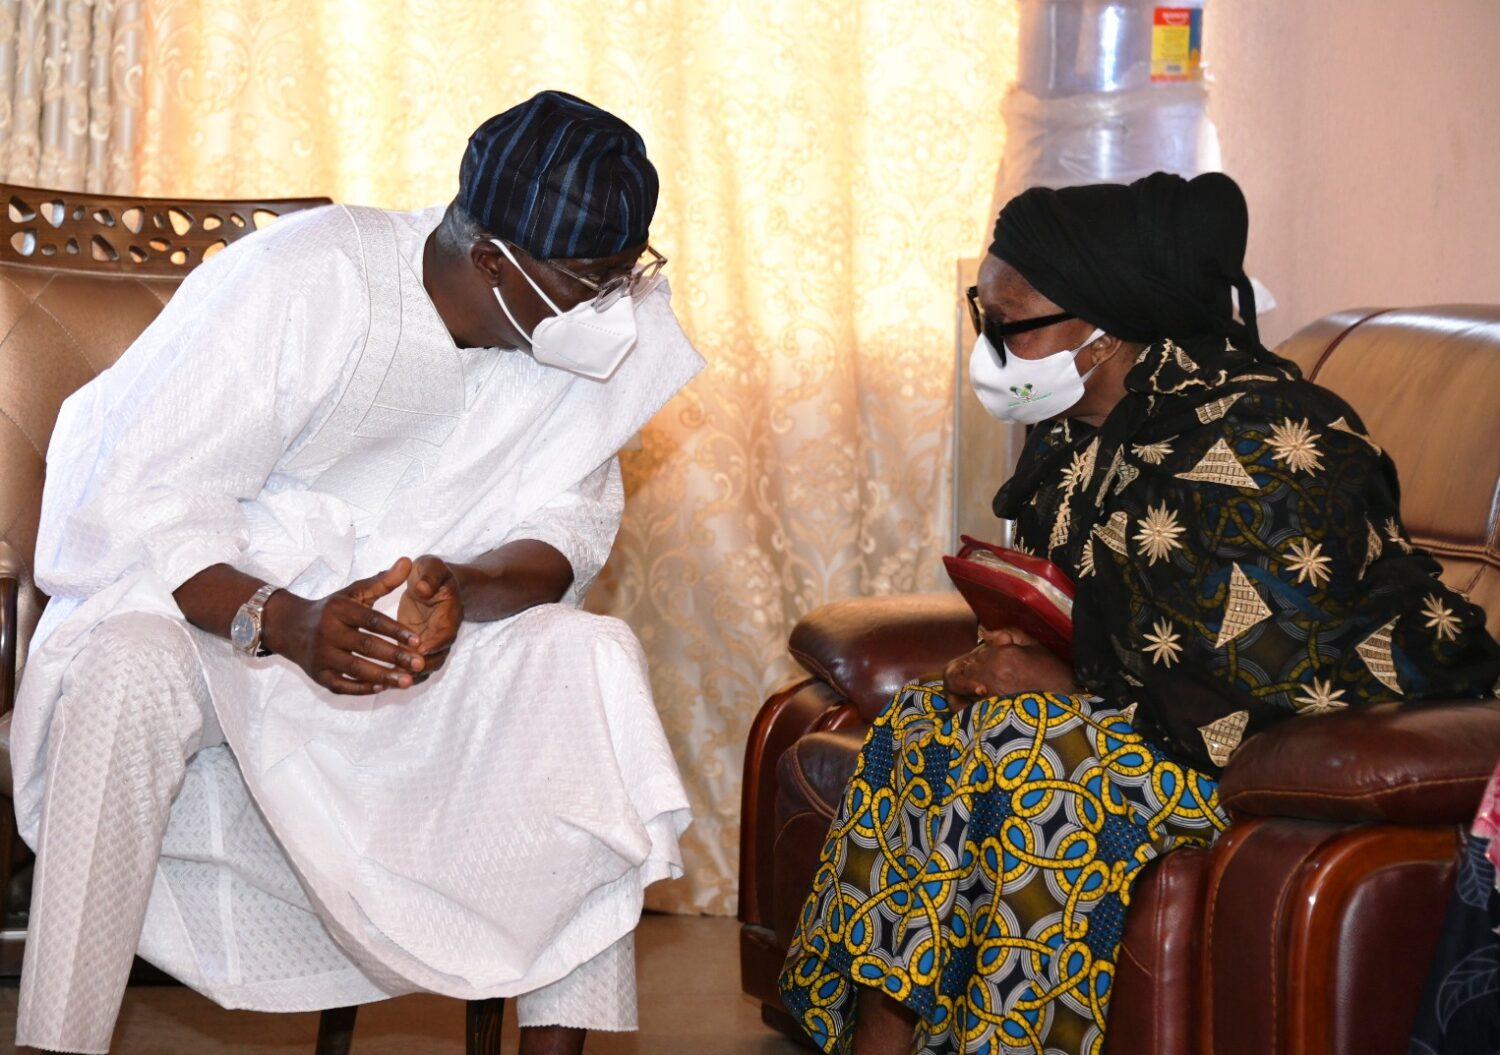 Lagos State Governor, Mr Babajide Sanwo-Olu (left), condoling with wife of the deceased, Mrs. Jumoke Rasak during a condolence visit to the family of late Chief Lanre Razak, on Sunday, August 16, 2020.